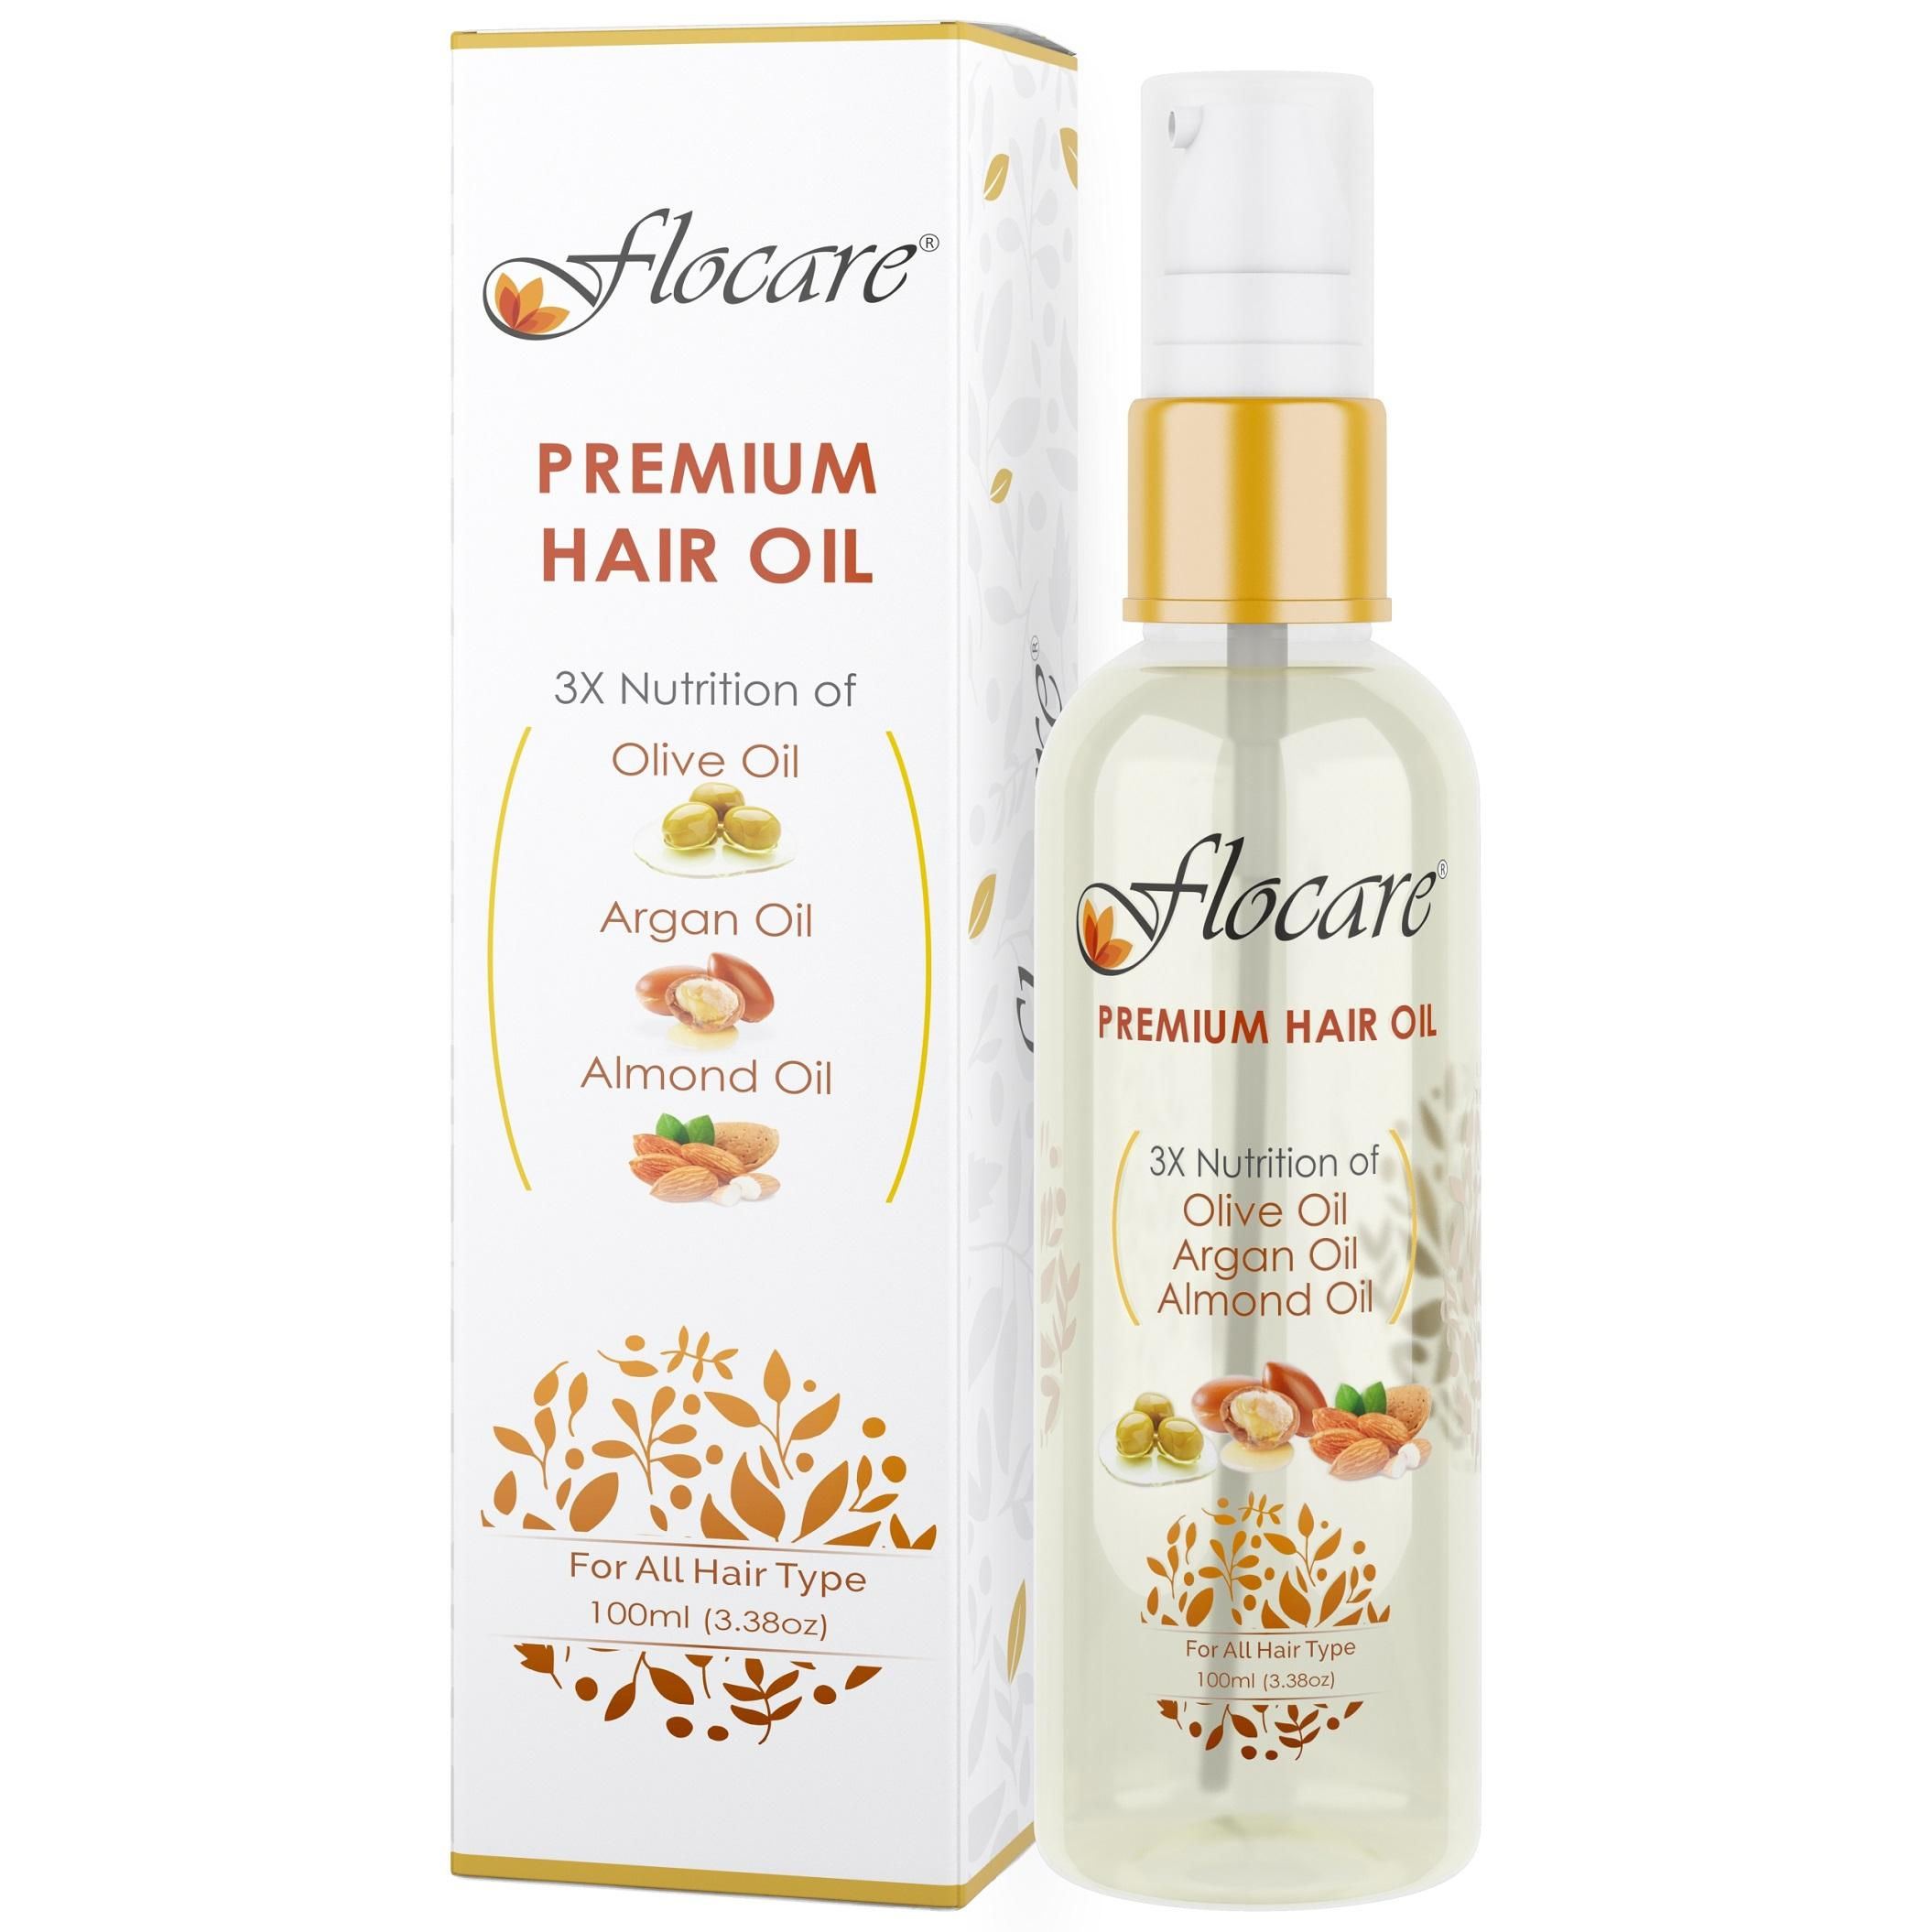 Private label cosmetics natural actives herbal aloe vera hair oil bhringraj tea tree oil jojoba oil